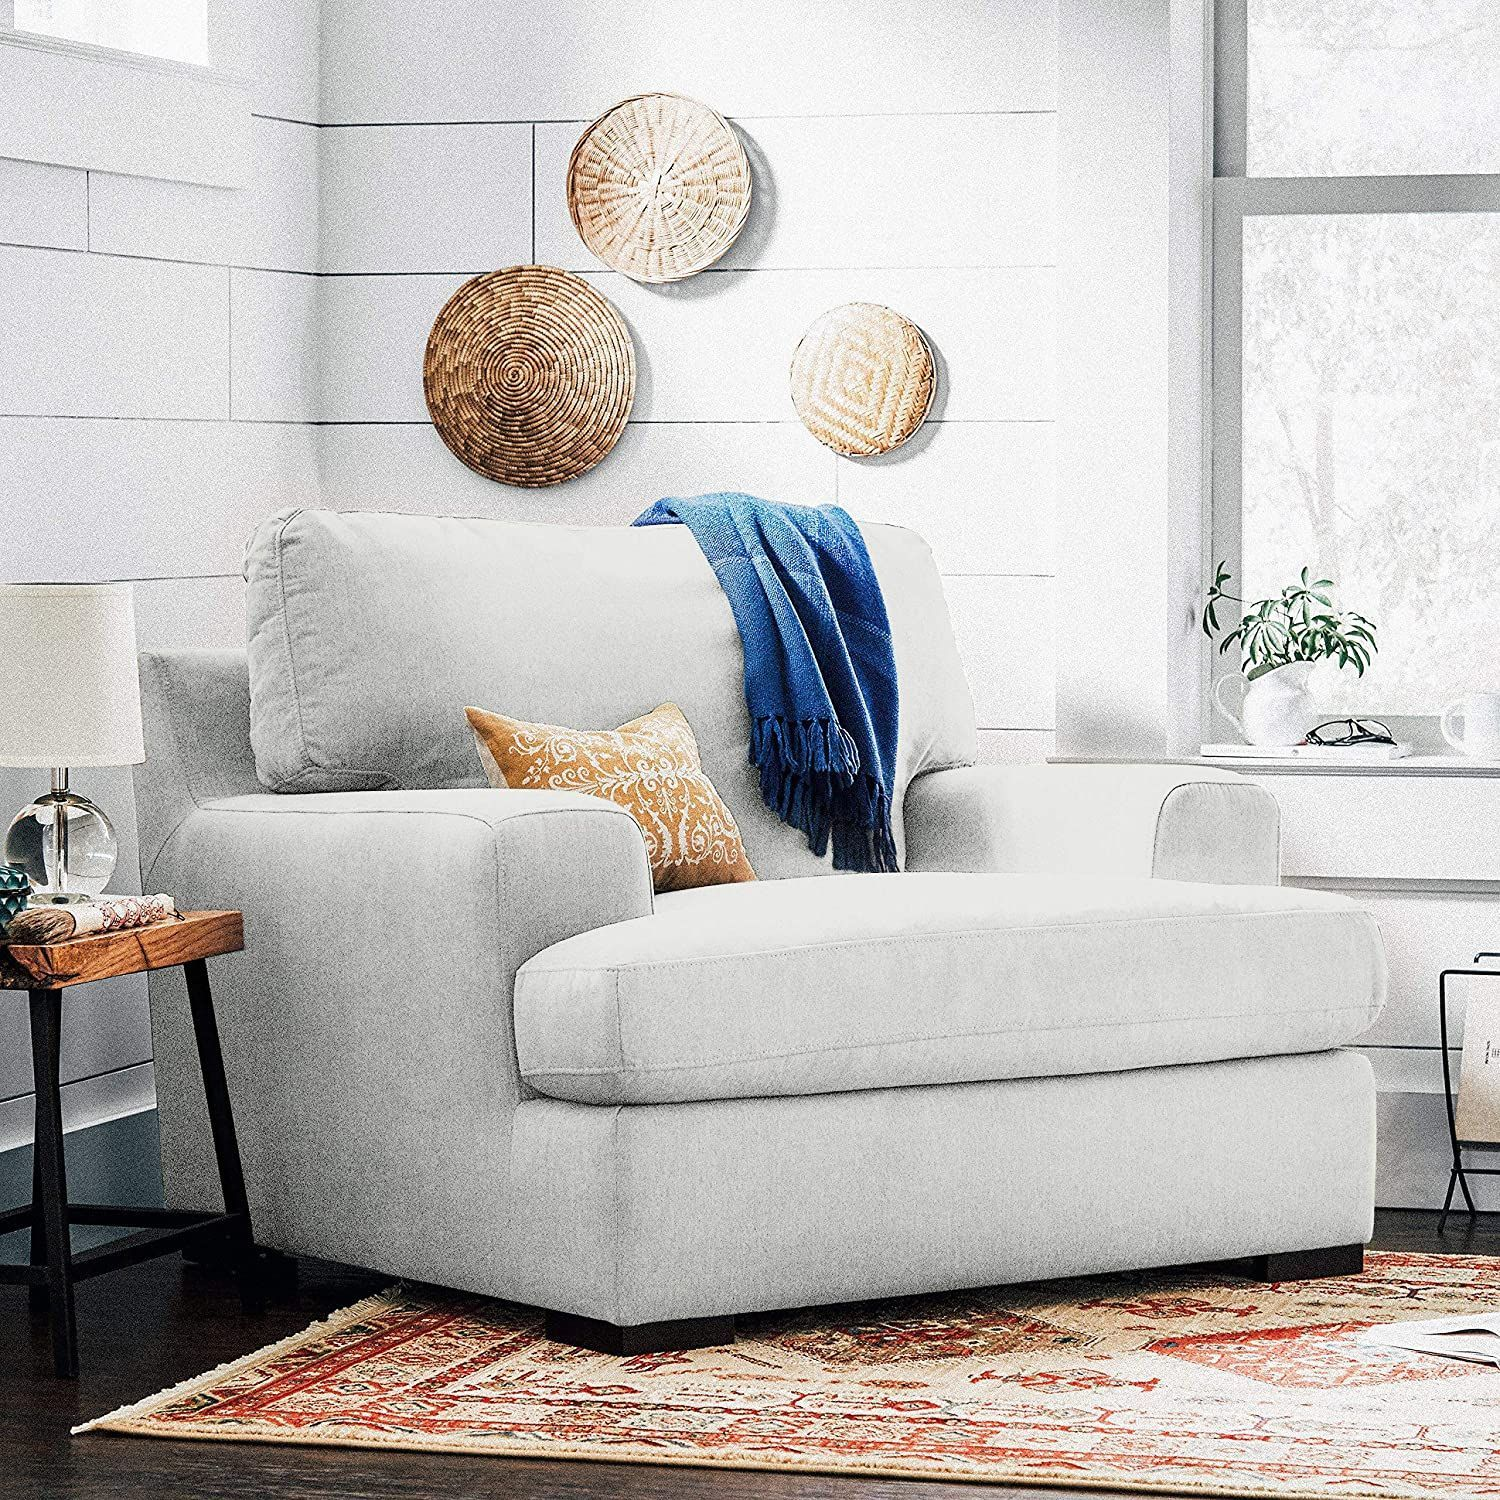 16 Best Comfy Couches And Chairs Coziest Furniture To Buy